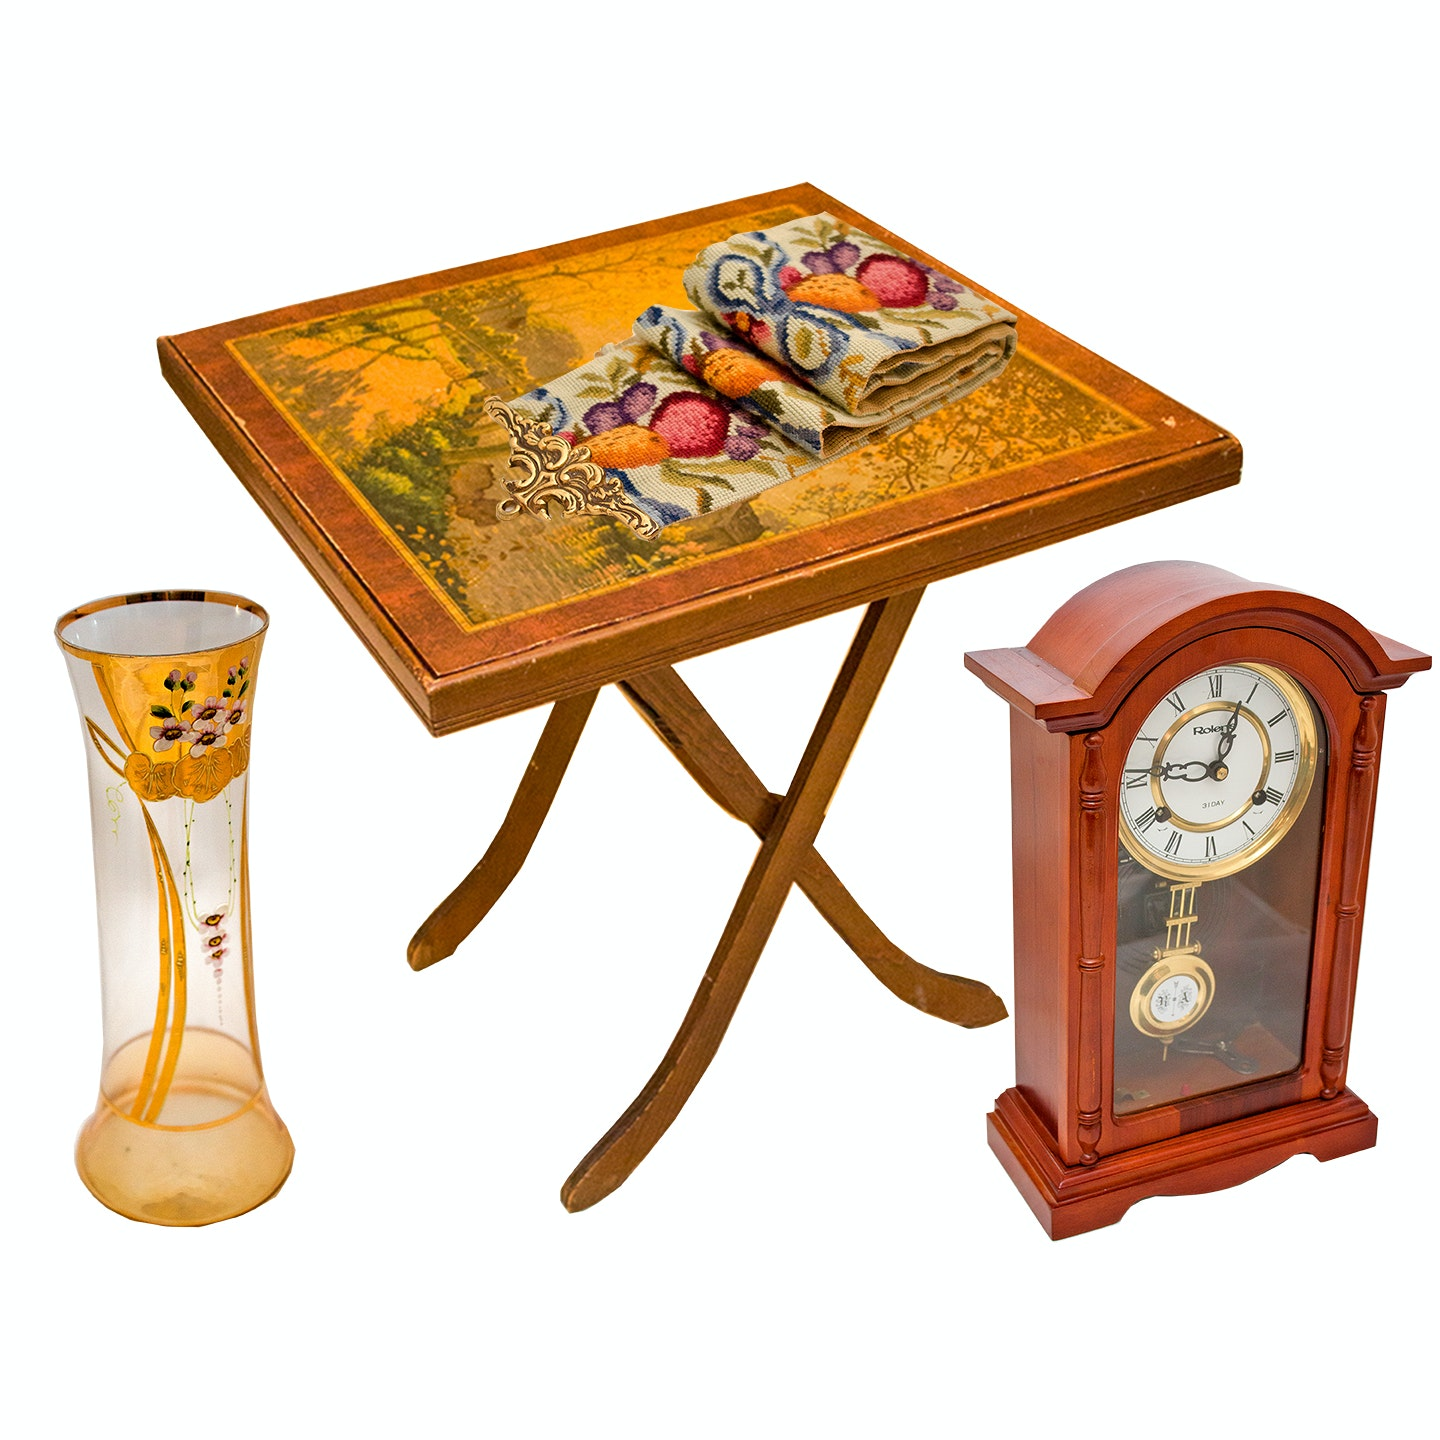 Vintage Table and Home Decor